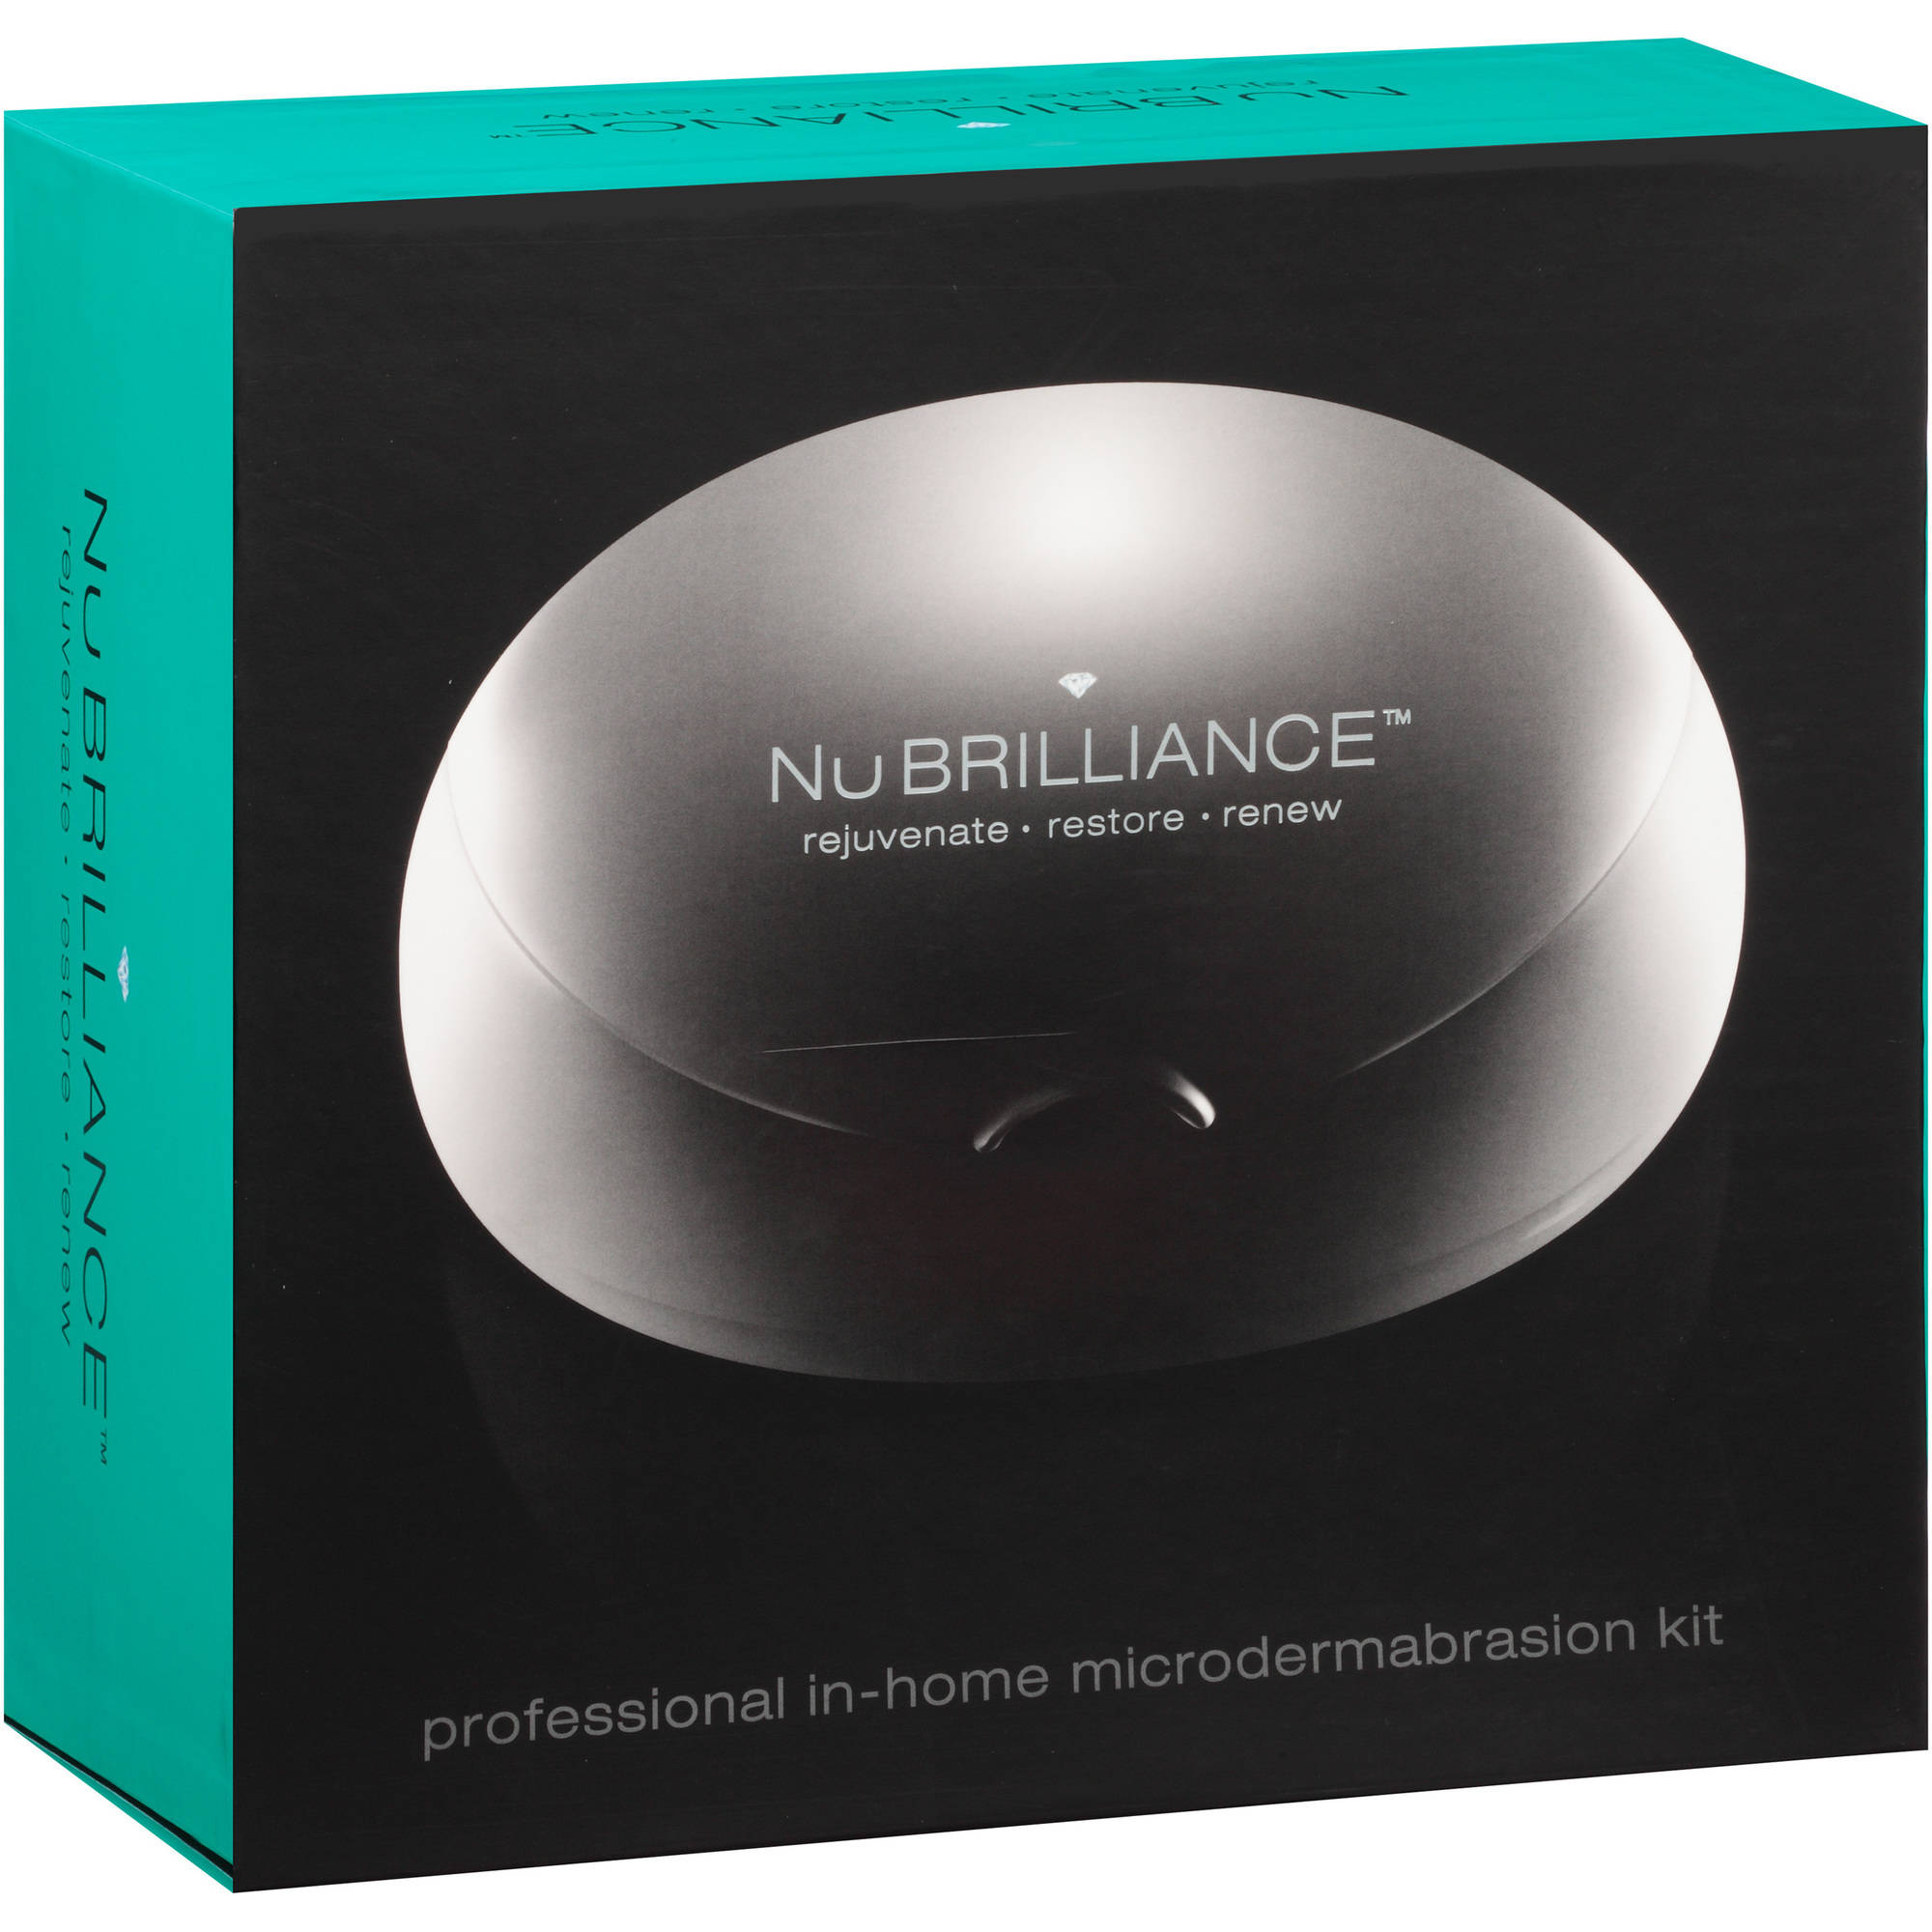 NuBRILLIANCE Professional In-Home Microdermabrasion Kit, 34 pc